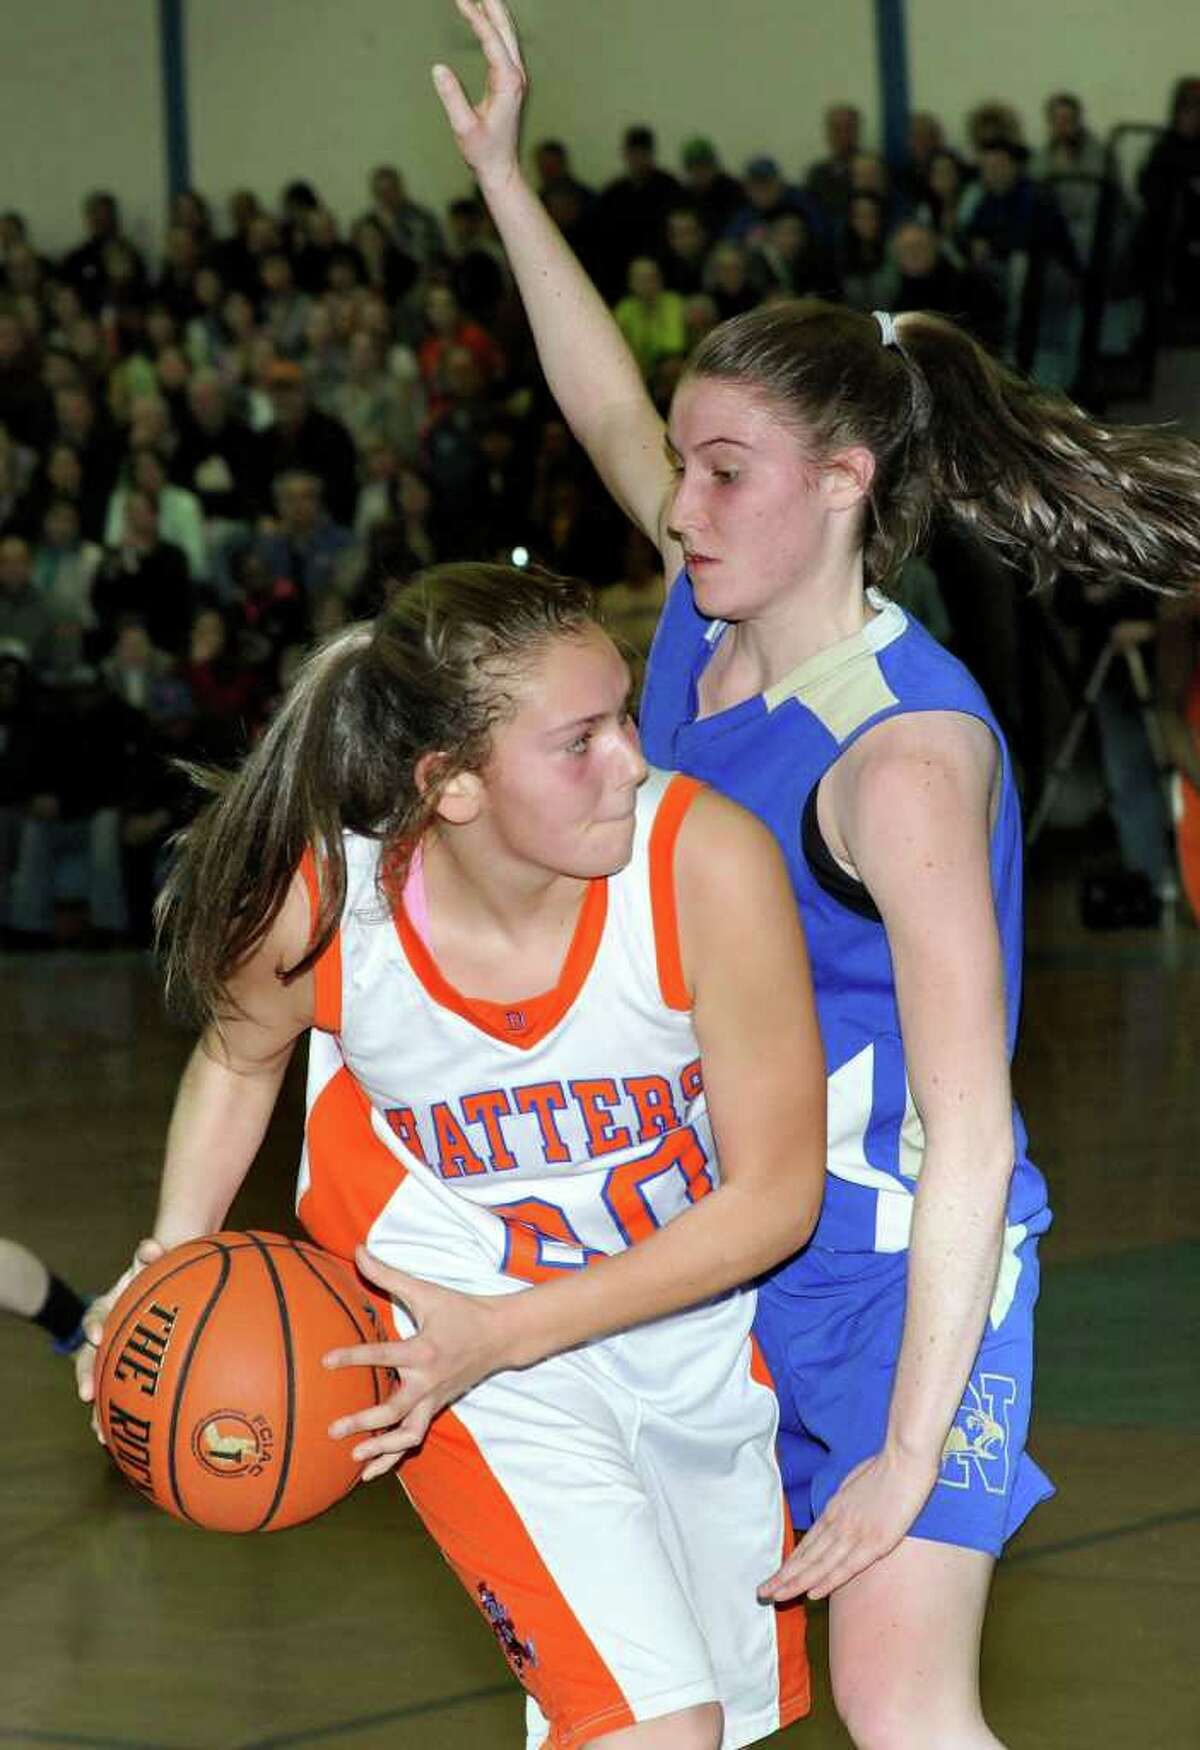 Left, for Danbury High, #20, Allie Smith. #10, Newtown High, Jess Lynch play in the Class LL state girls basketball tournament held at Danbury High School Monday, March 5, 2012.